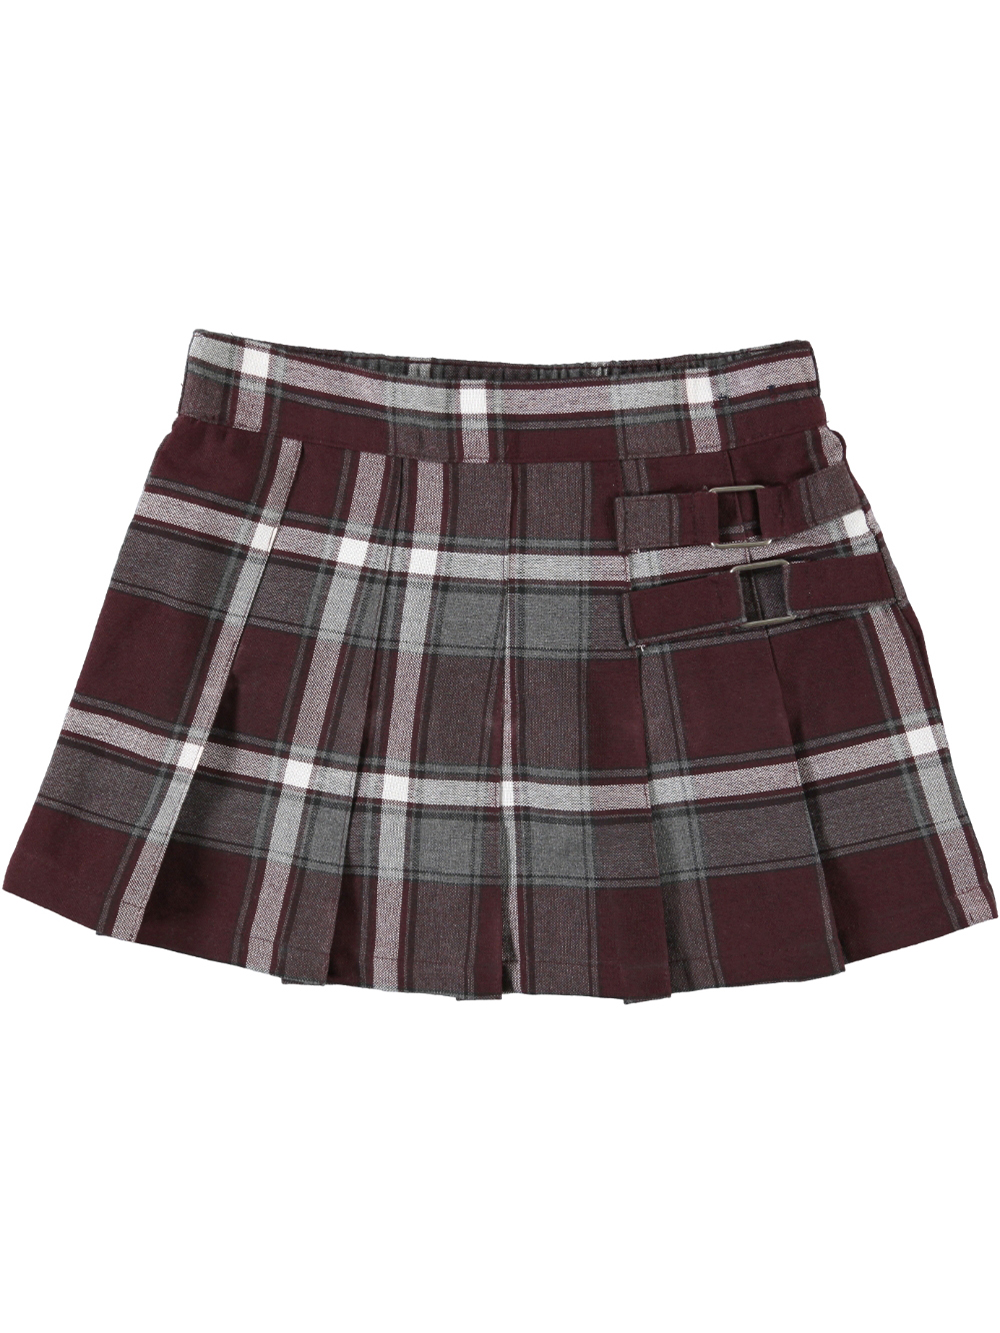 Plaid #91 Shorts/Skorts